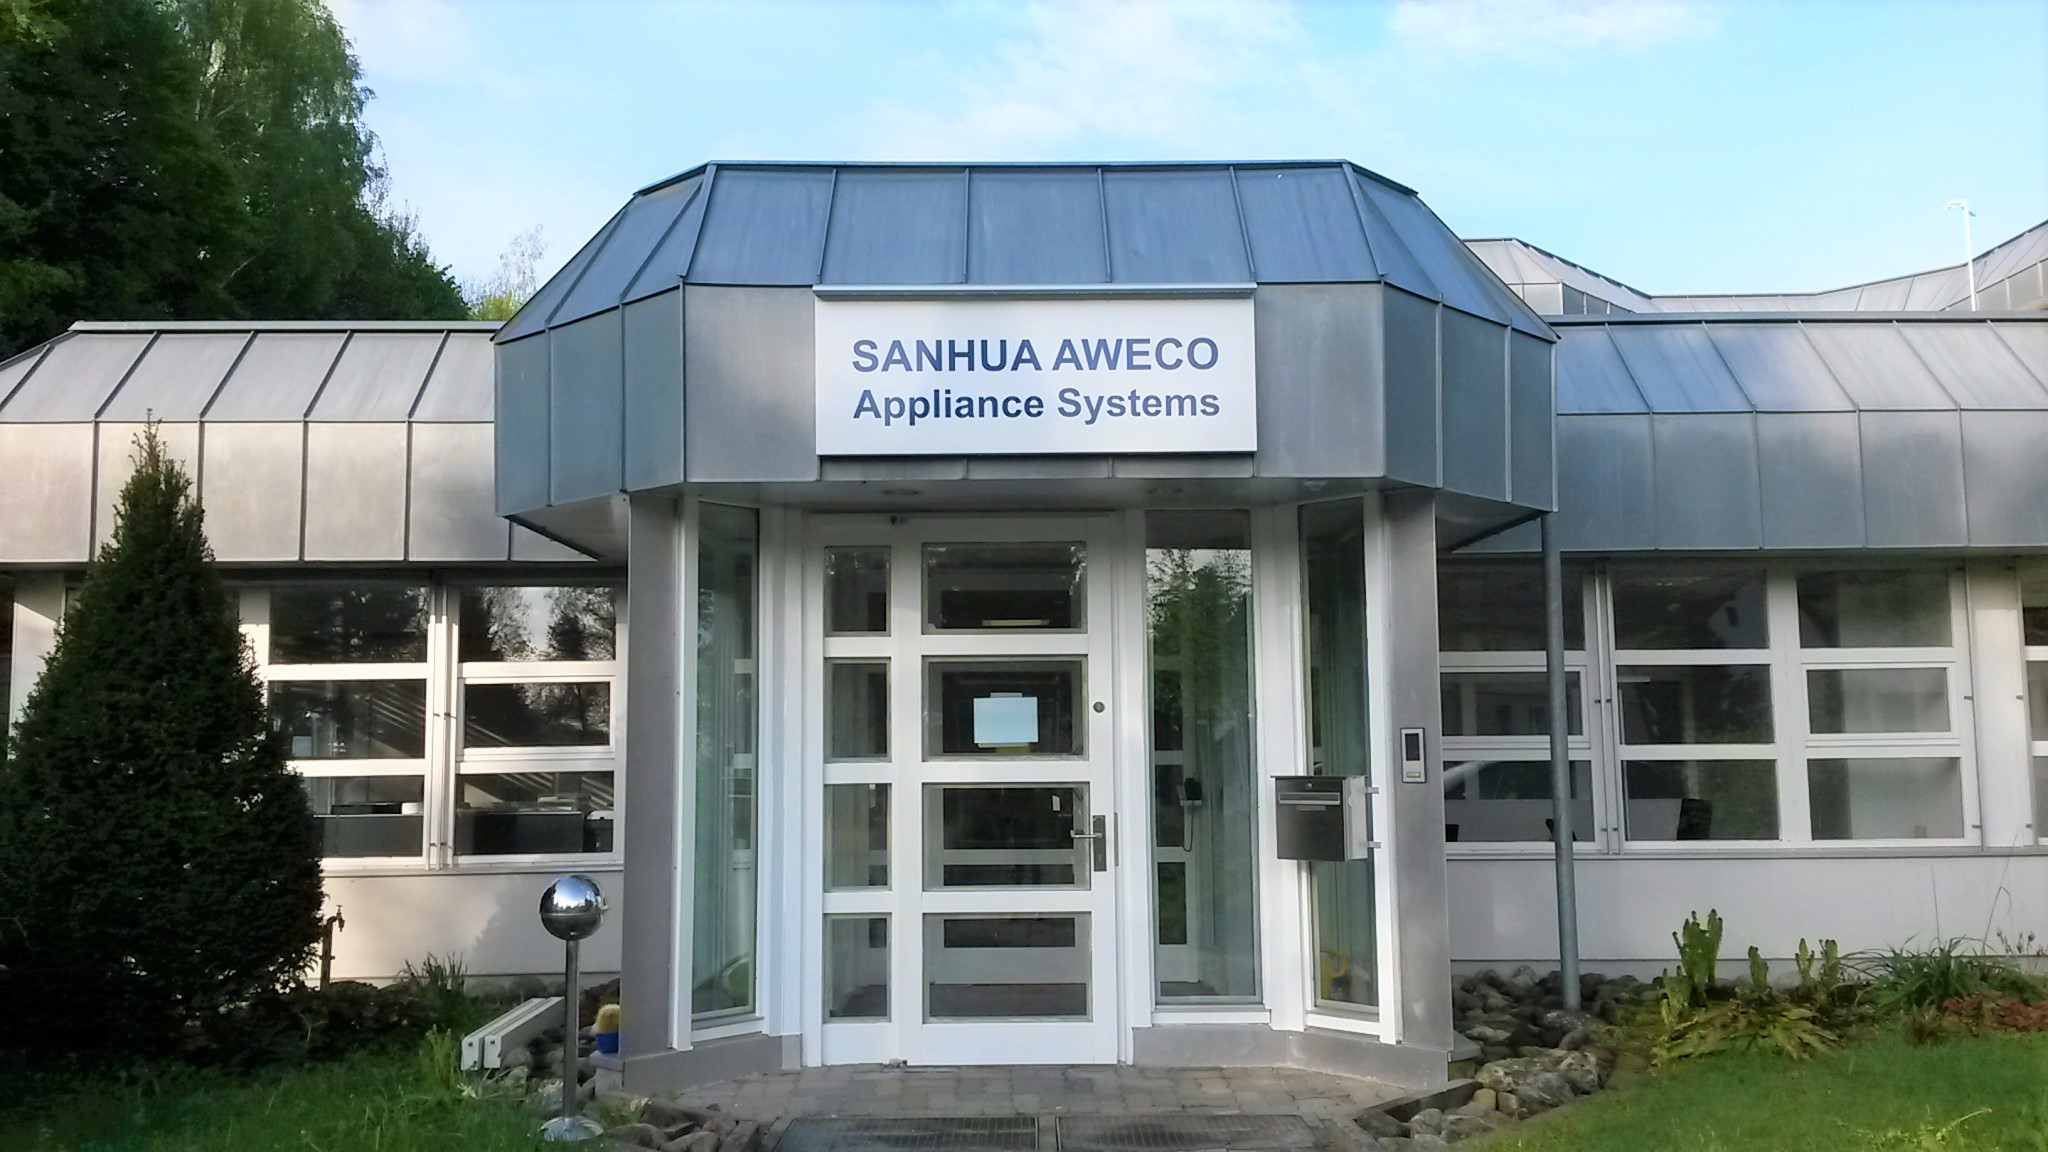 Neukirch, Germany. Sanhua Aweco